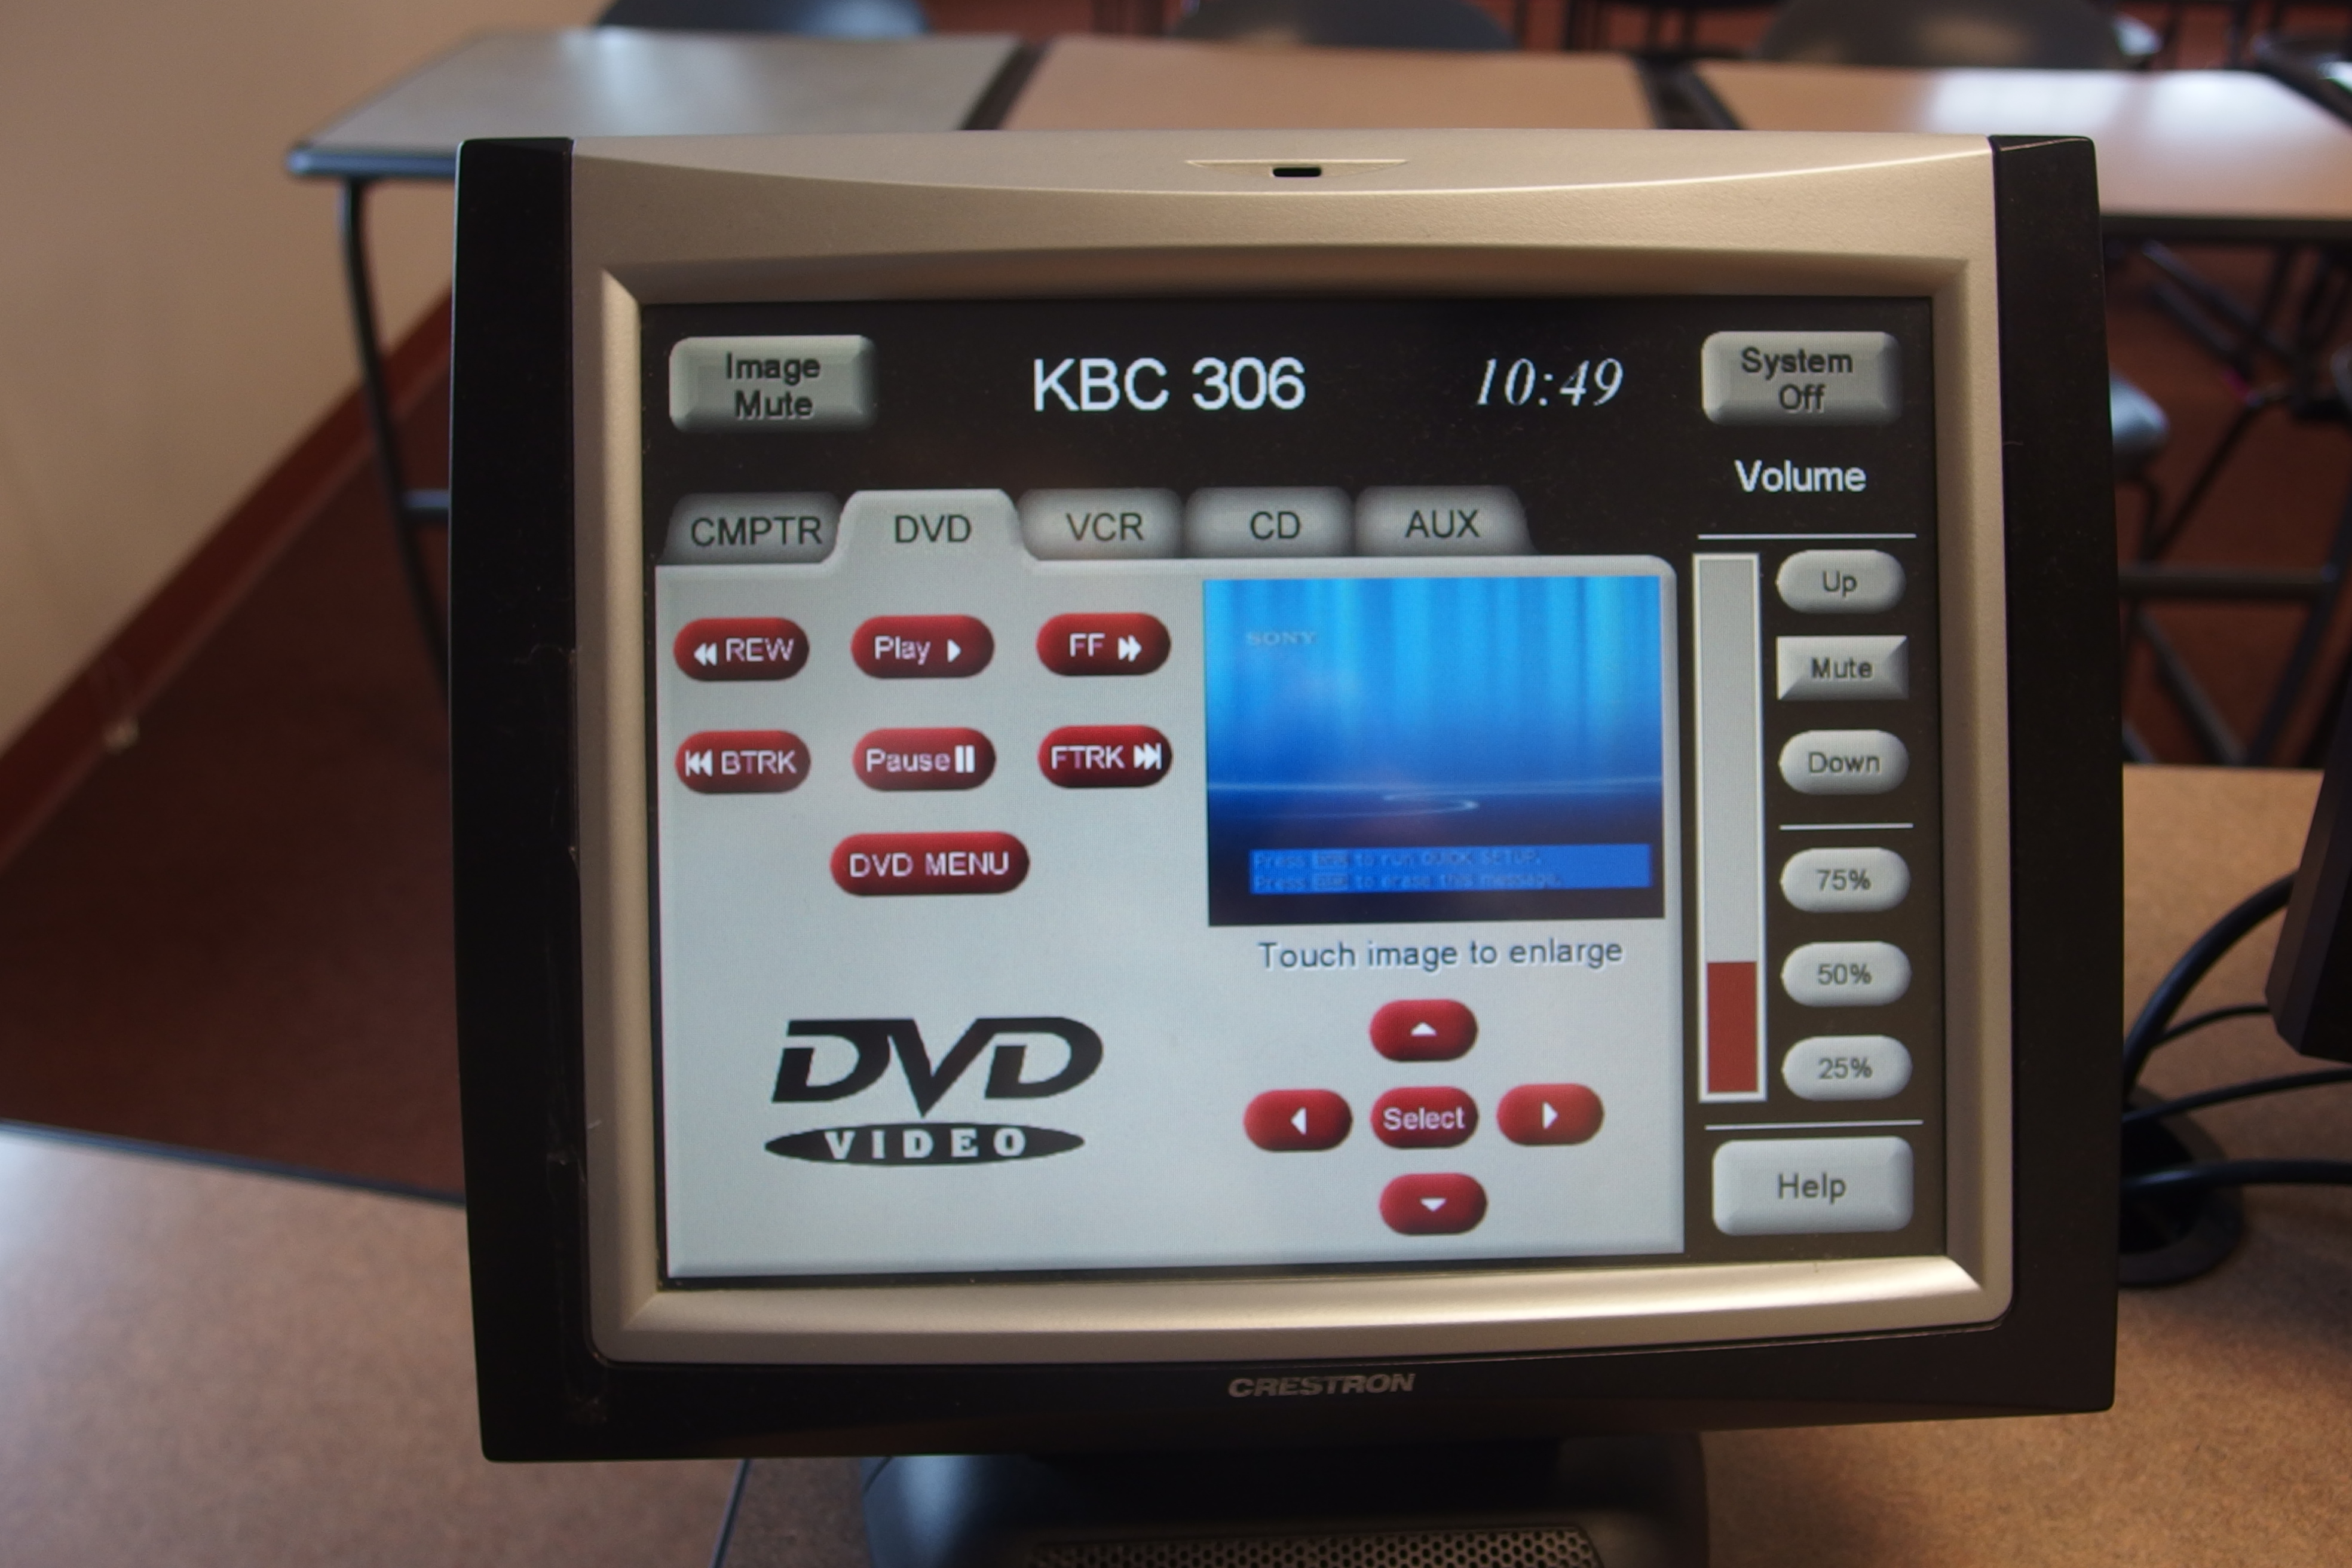 Photo of crestron control touch panel with the dvd tab active